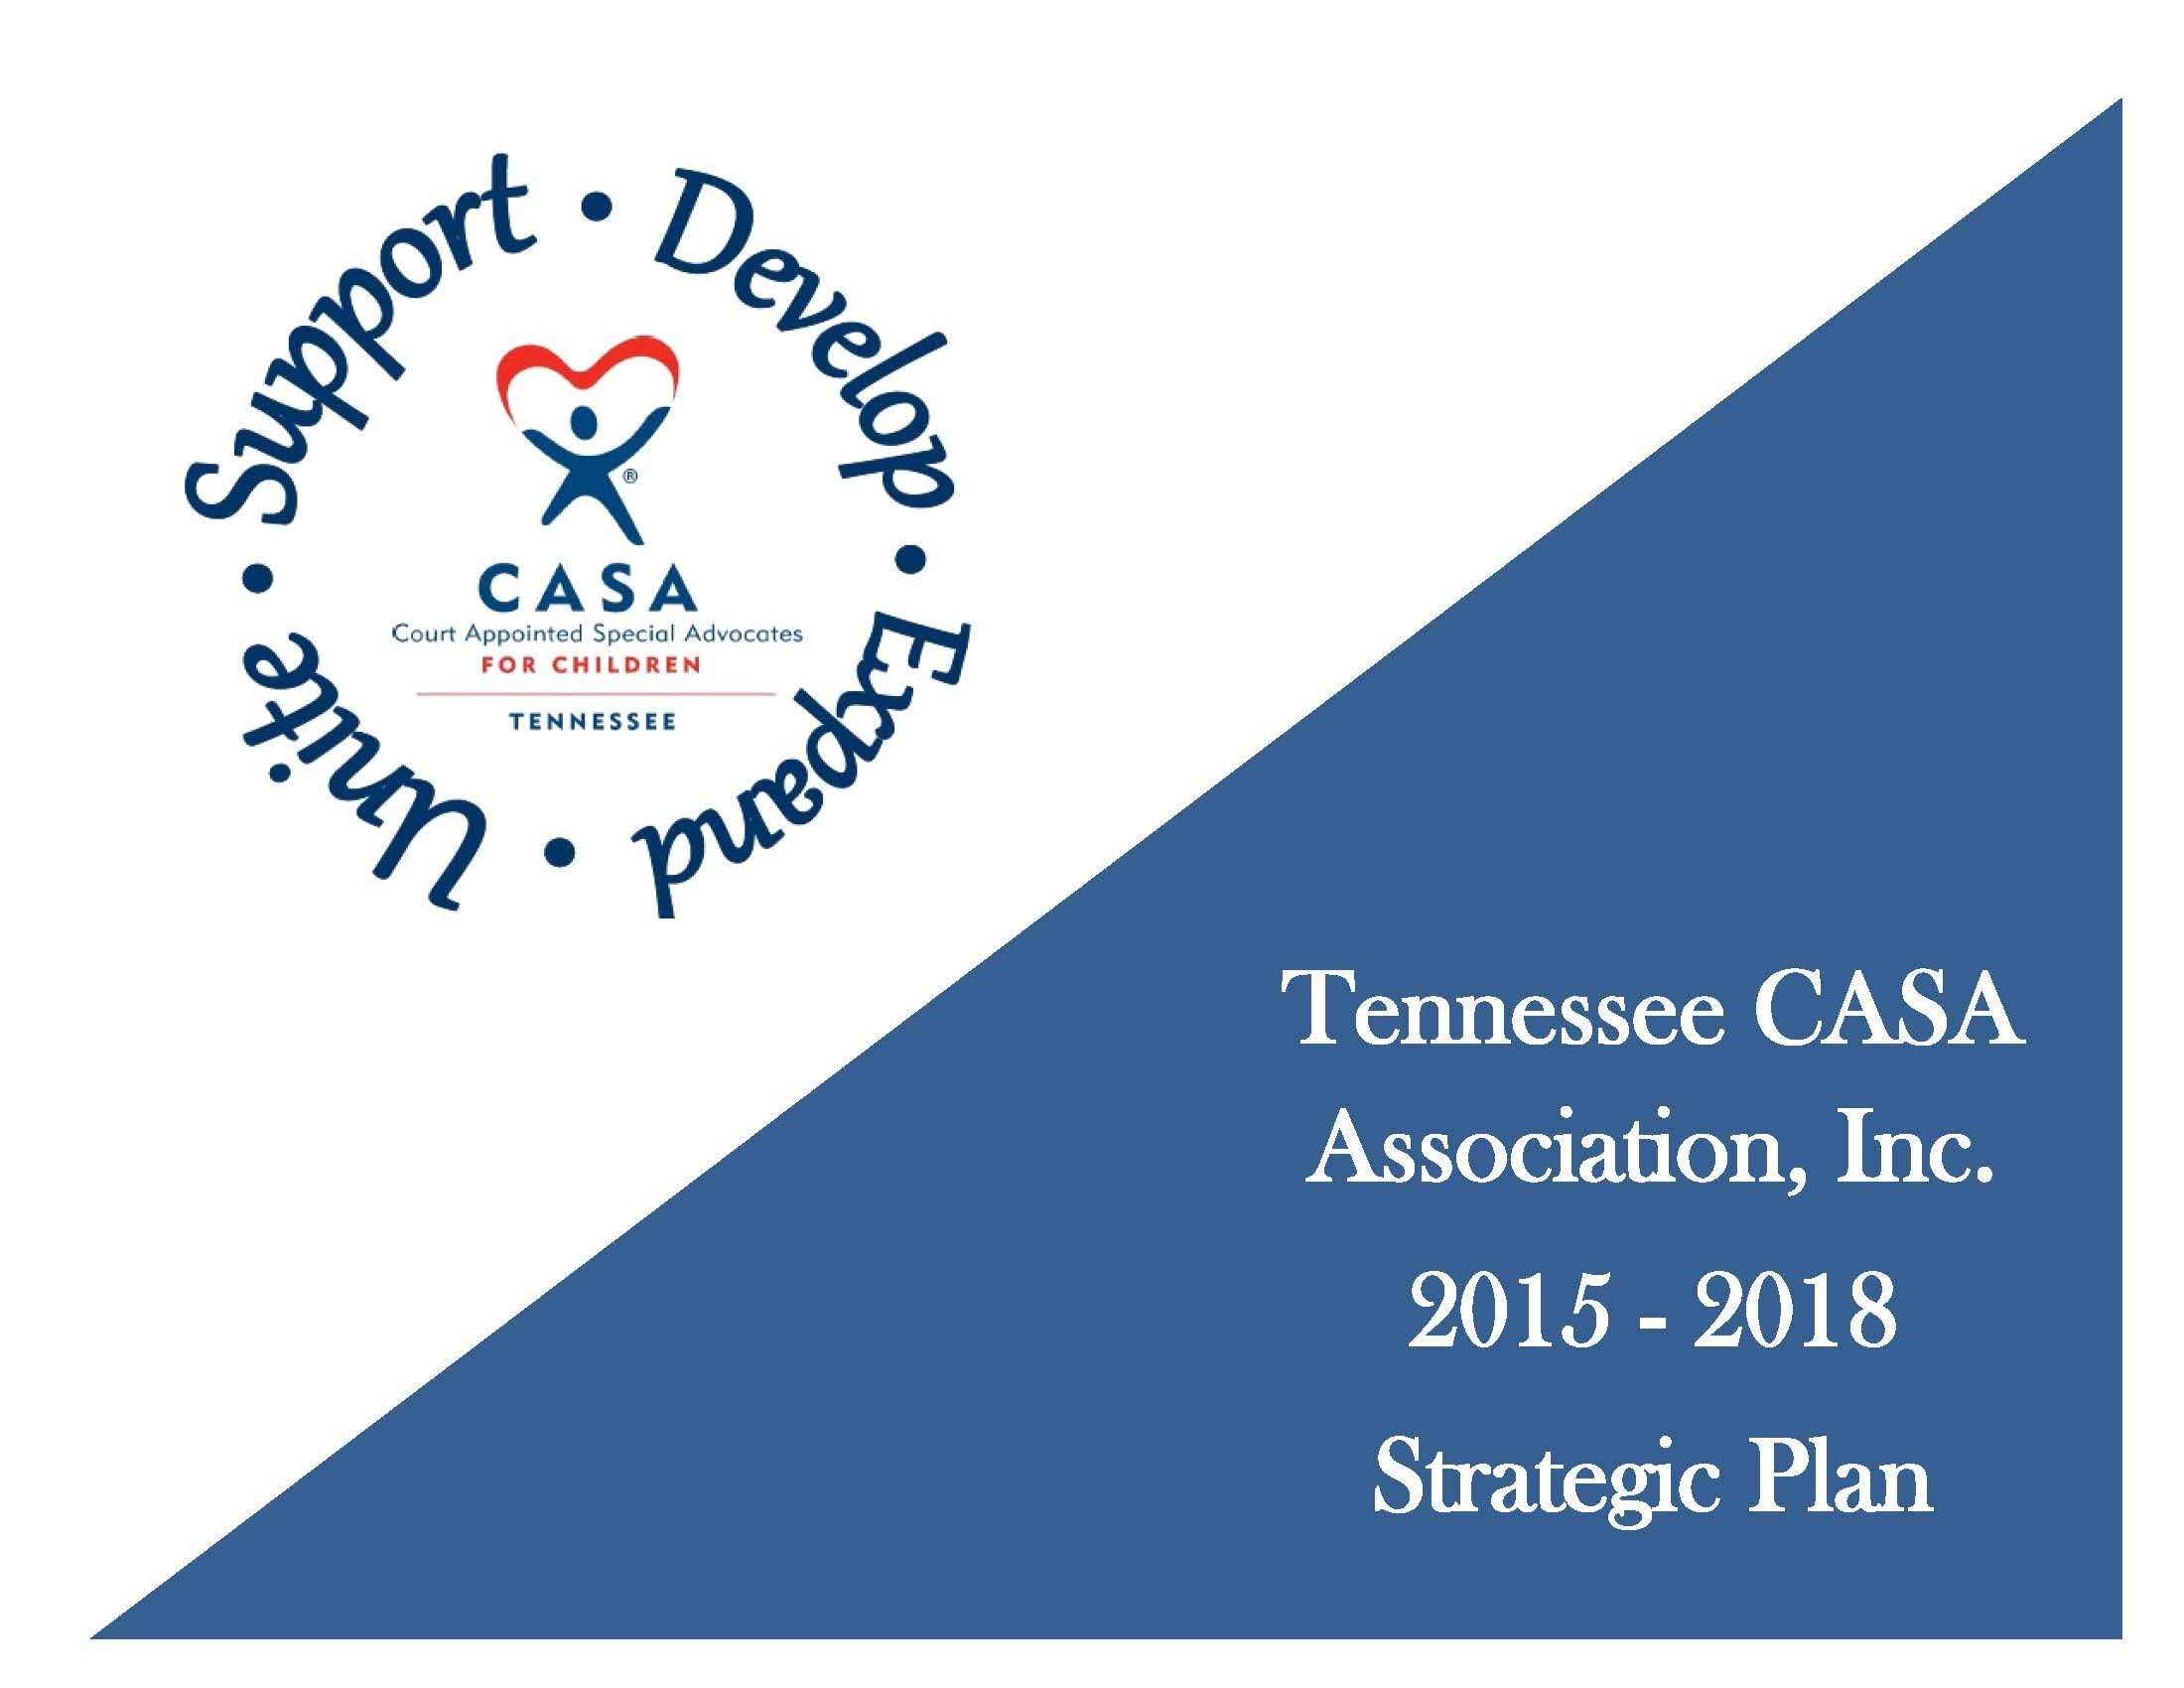 2015-2018 Strategic Plan